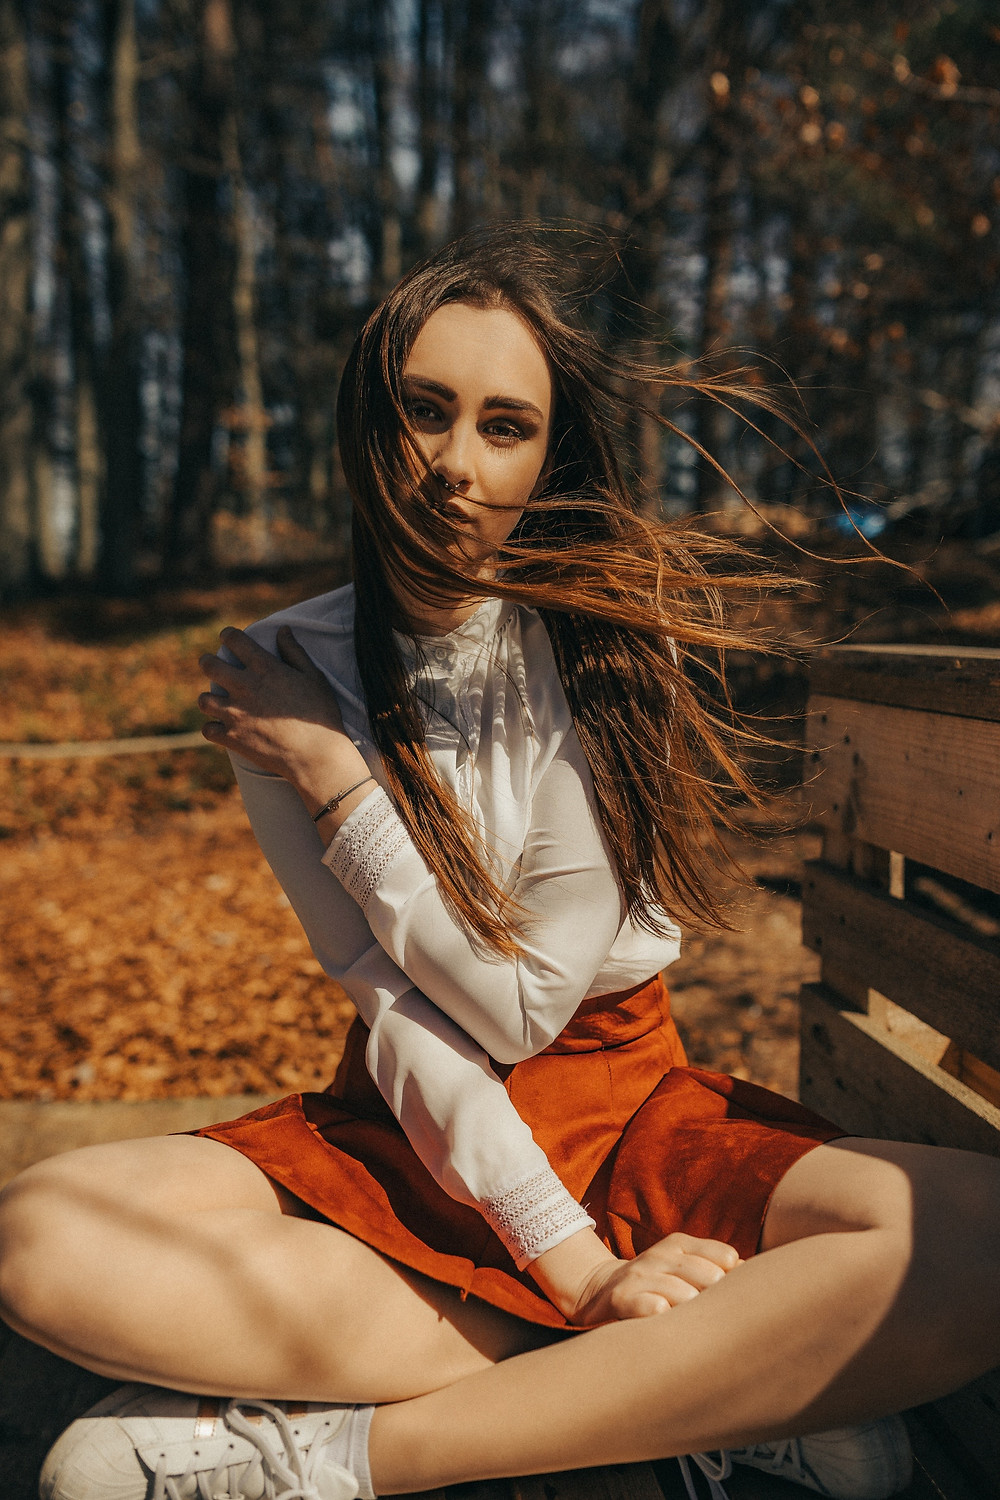 Lady sat in forest with long brown hair flowing in the breeze